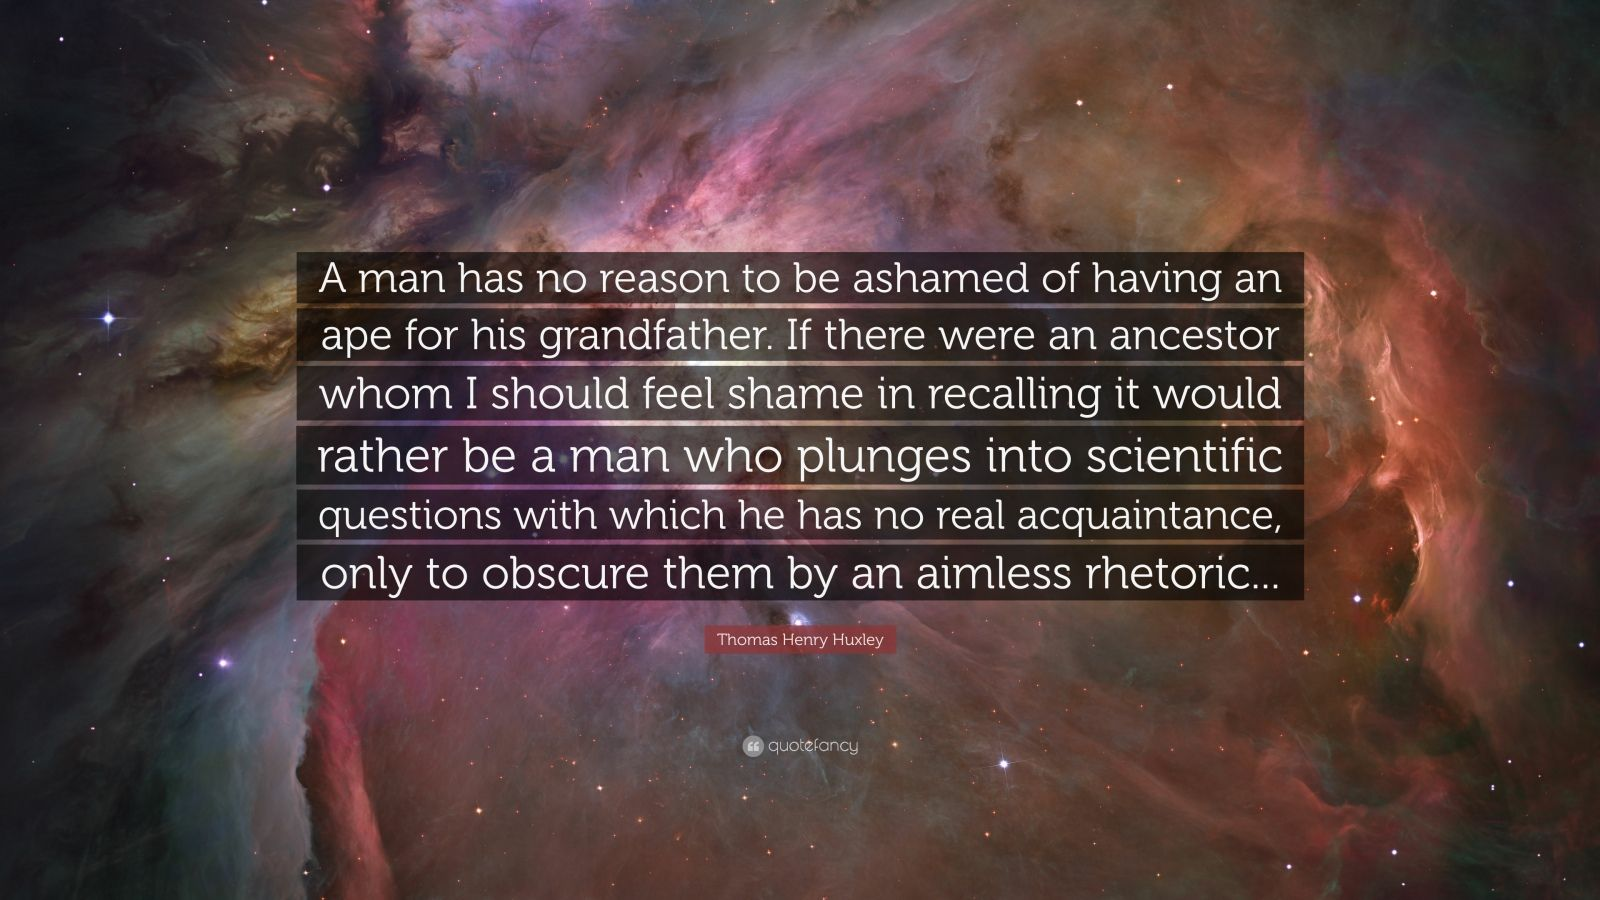 "Thomas Henry Huxley Quote: ""A man has no reason to be ashamed of having an ape for his grandfather. If there were an ancestor whom I should feel shame in recalling it would rather be a man who plunges into scientific questions with which he has no real acquaintance, only to obscure them by an aimless rhetoric..."""